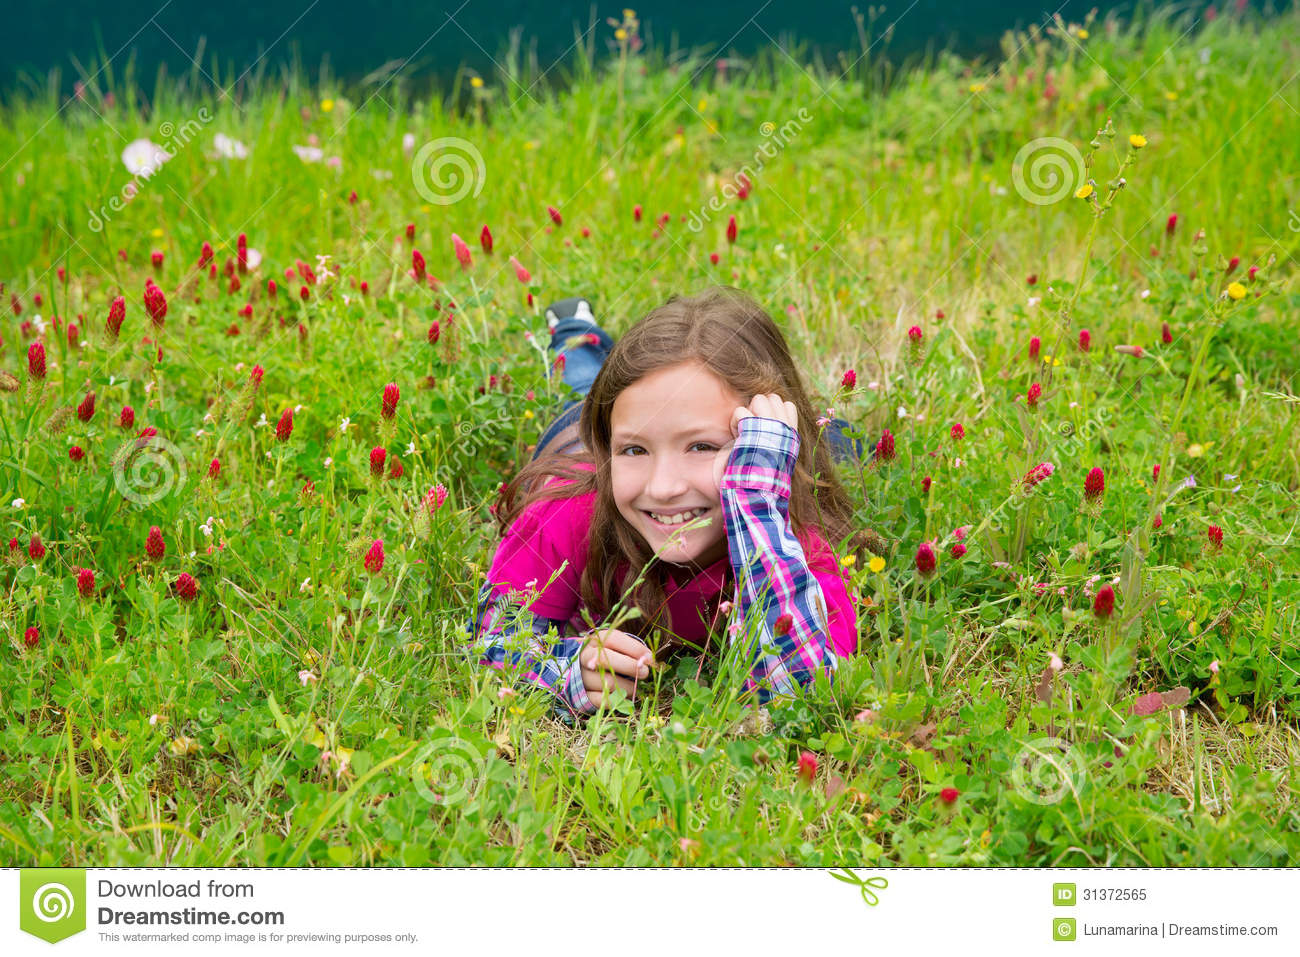 Smiley stock photos royalty free images amp vectors shutterstock - Little Boy Smiling In A Flowers Field Stock Image Hot